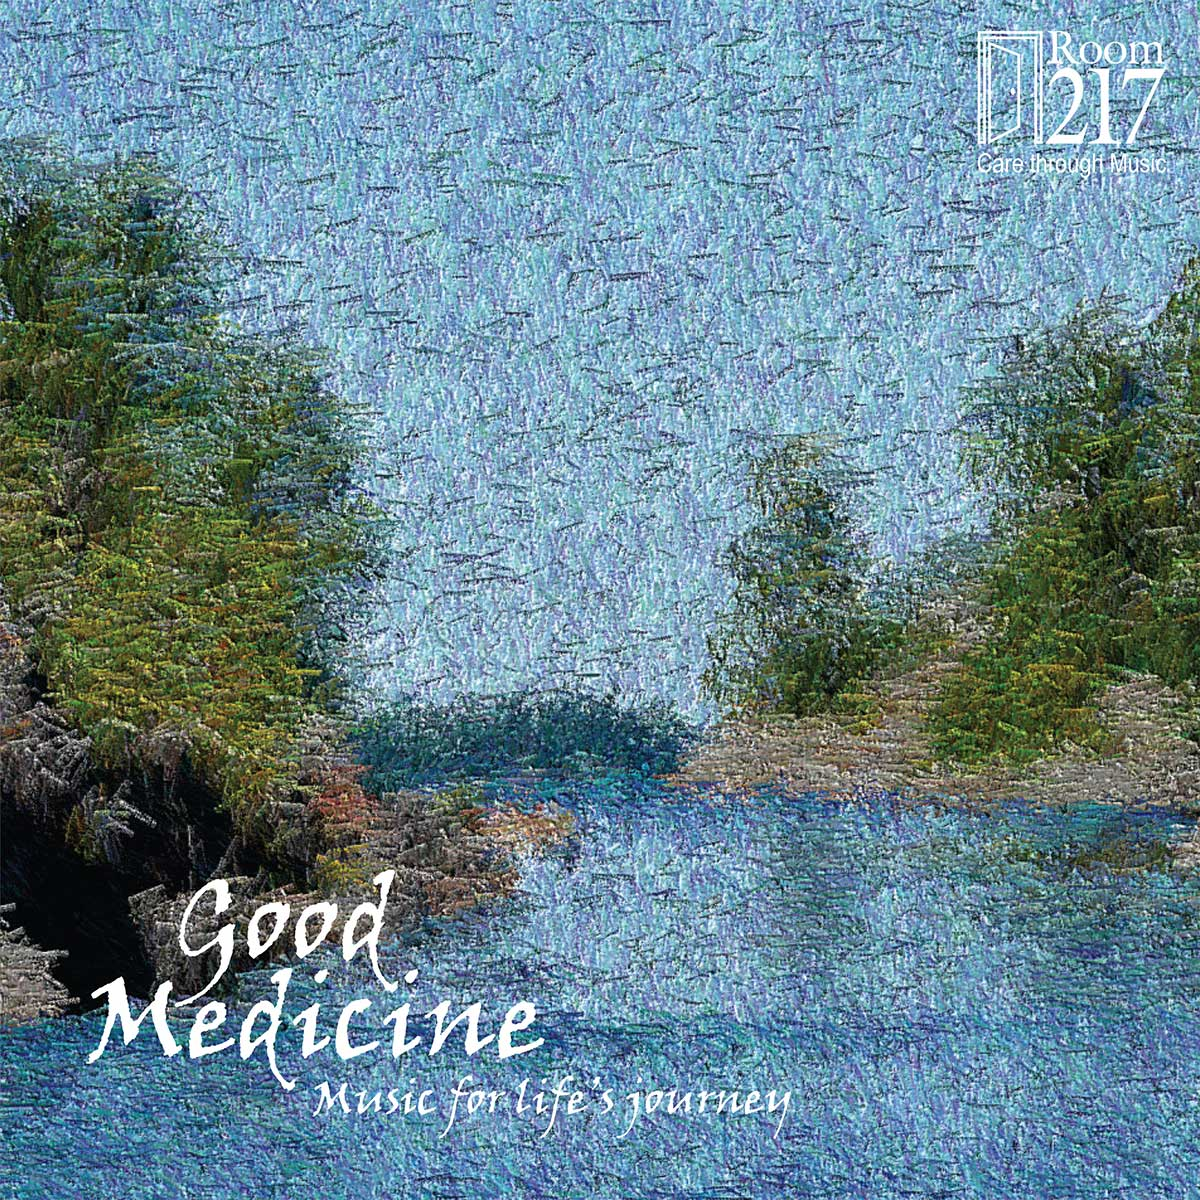 Room 217 - Good Medicine - Album art